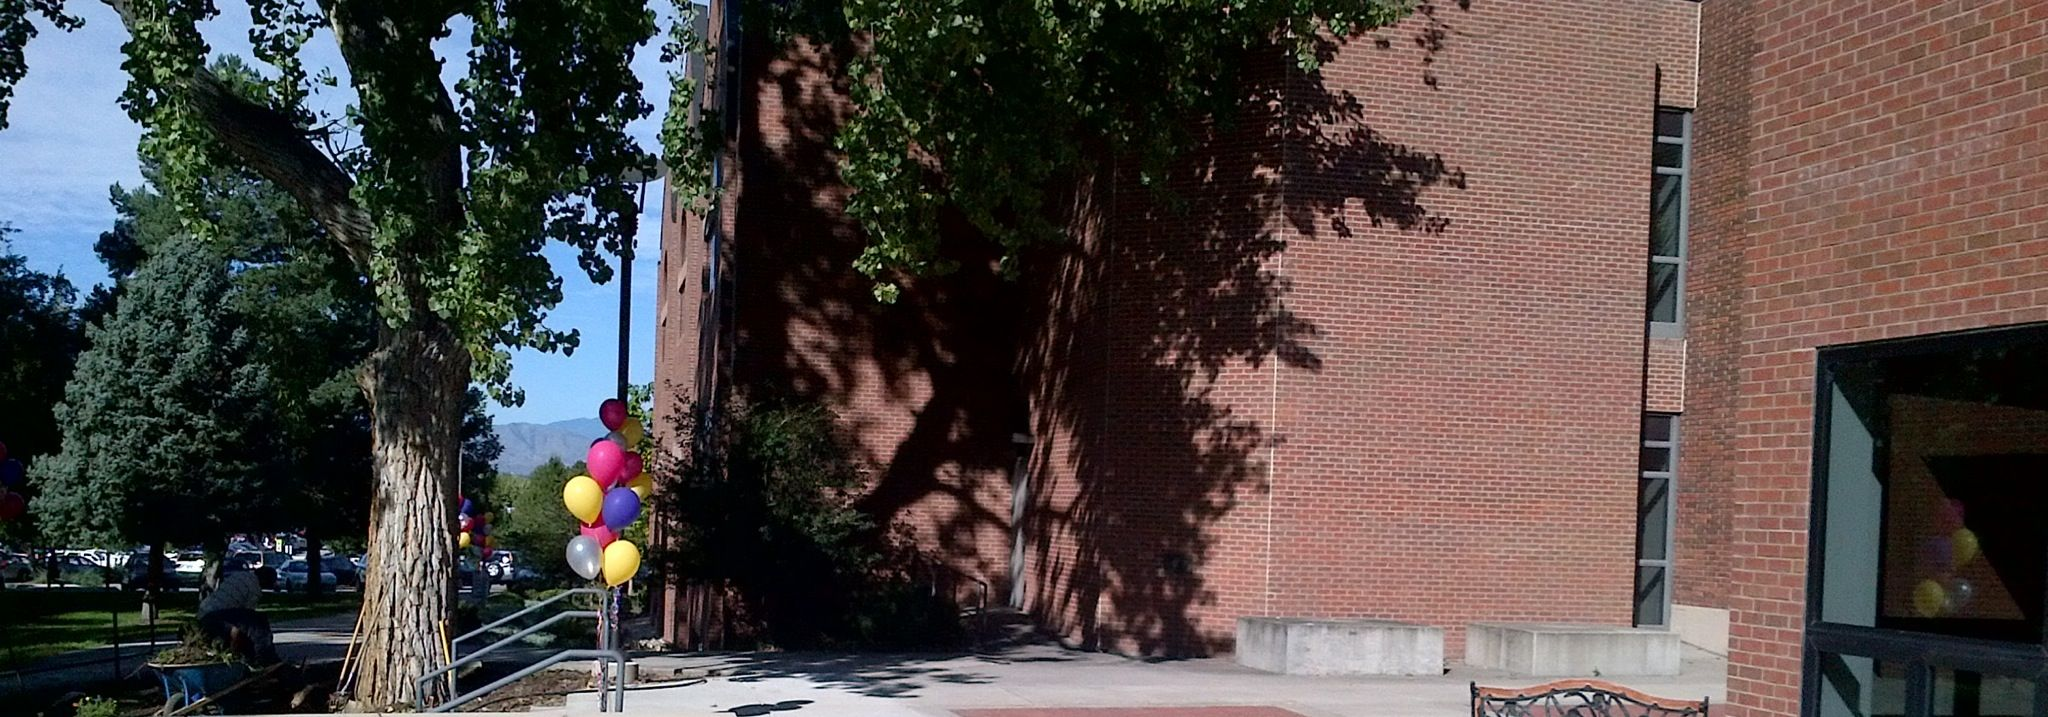 Porch side view at iliff school of theology f iliffontheroad co denver